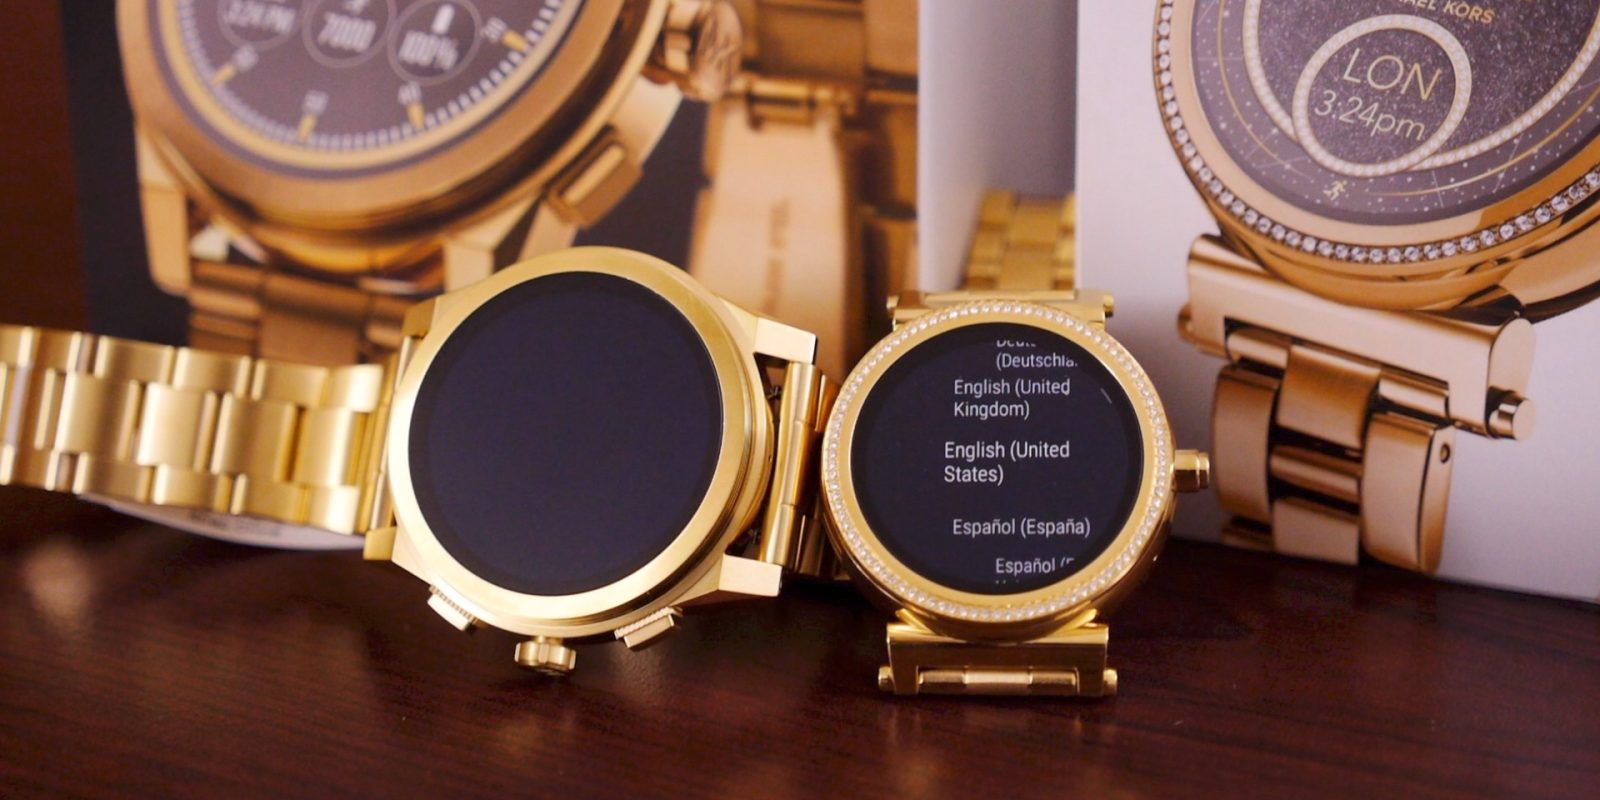 a22b35bbec74 Unboxing the Michael Kors Sofie and Grayson luxury smartwatches  Video